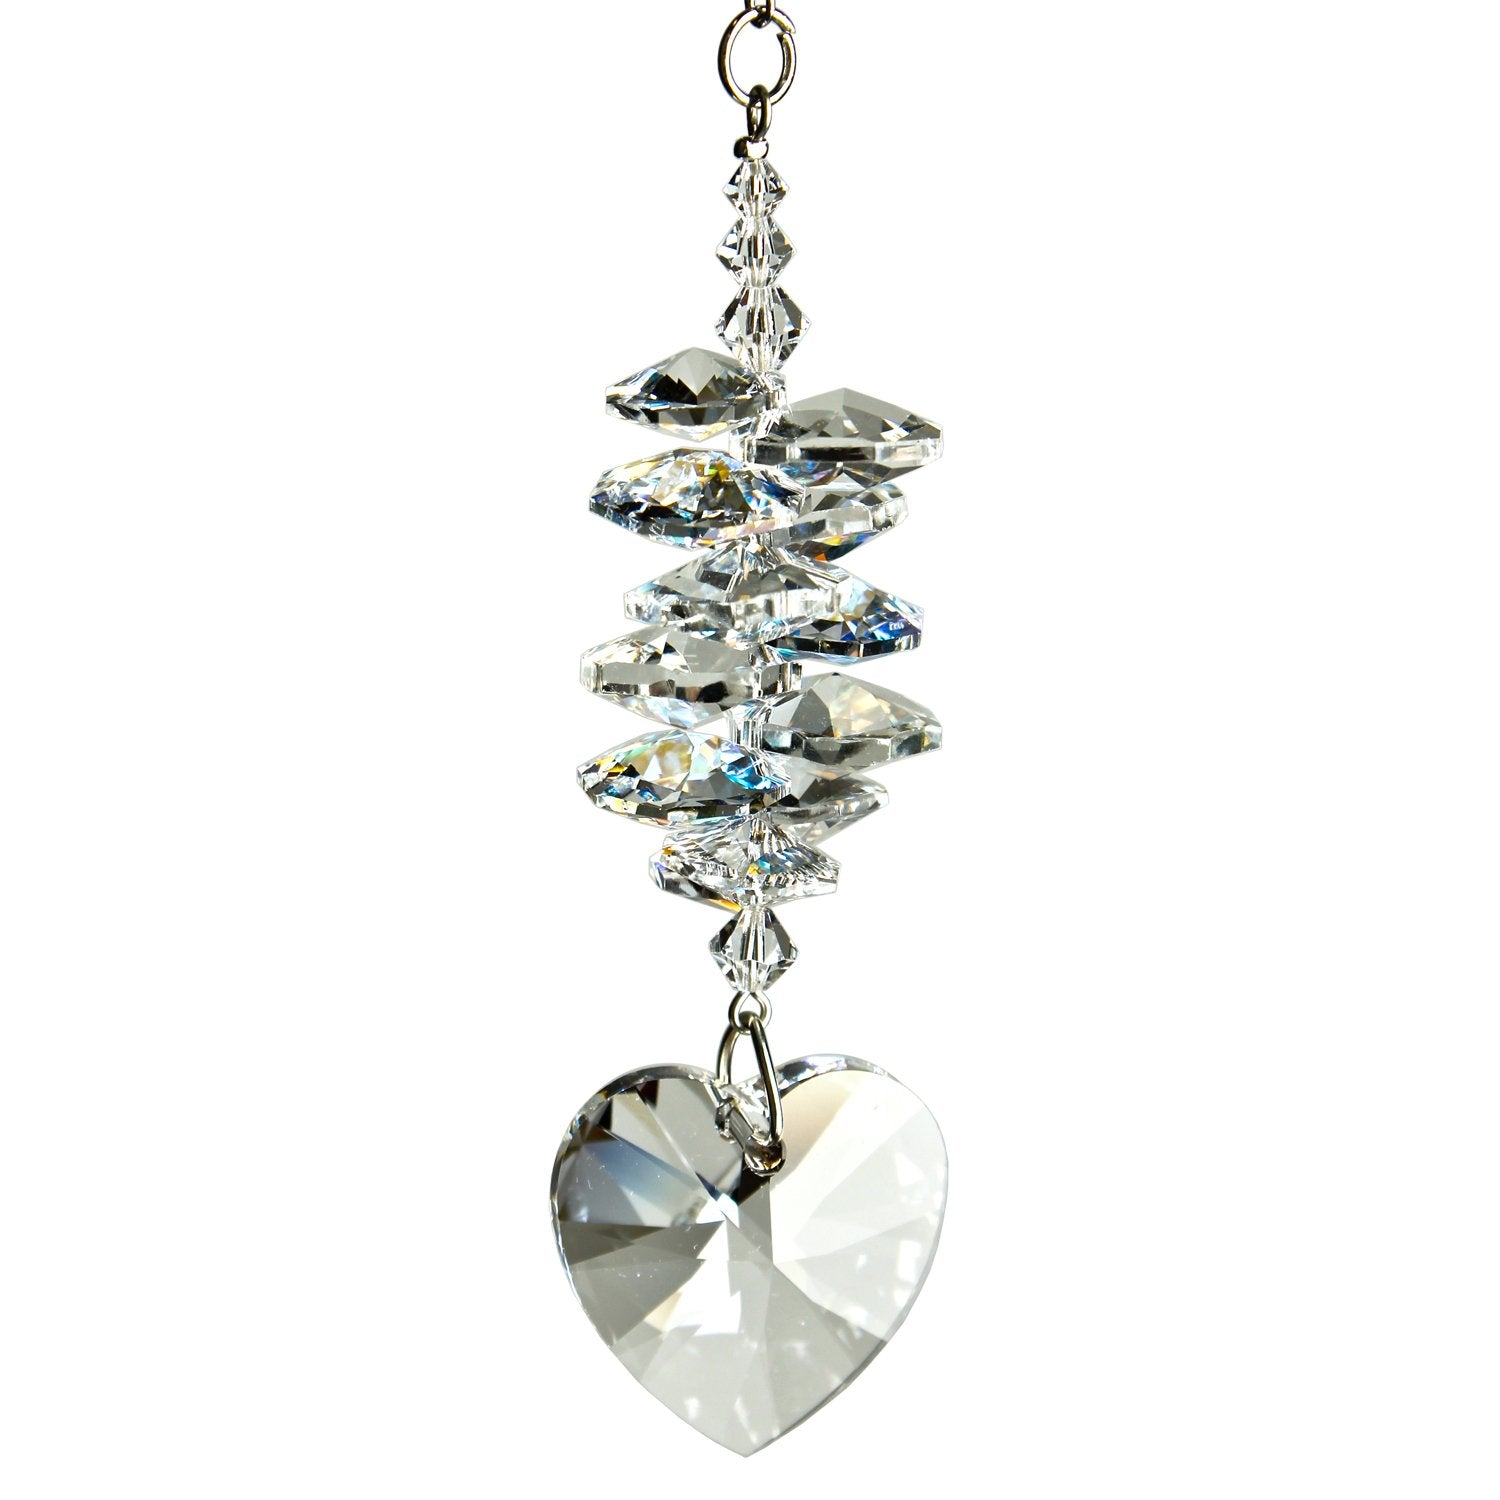 Crystal Heart Cascade Suncatcher - Ice alernate product image